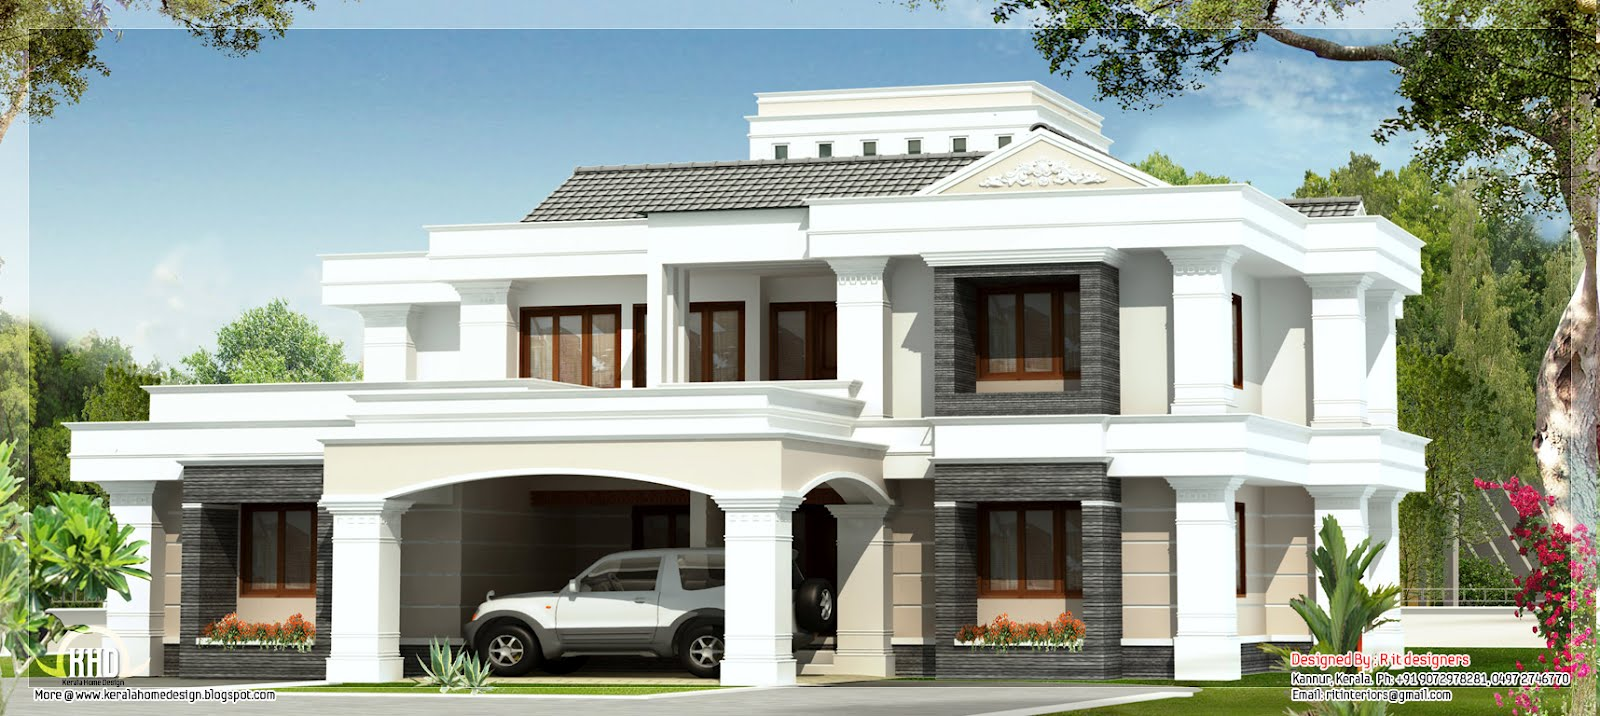 Kerala home decor kerala home decor for New build 4 bed house